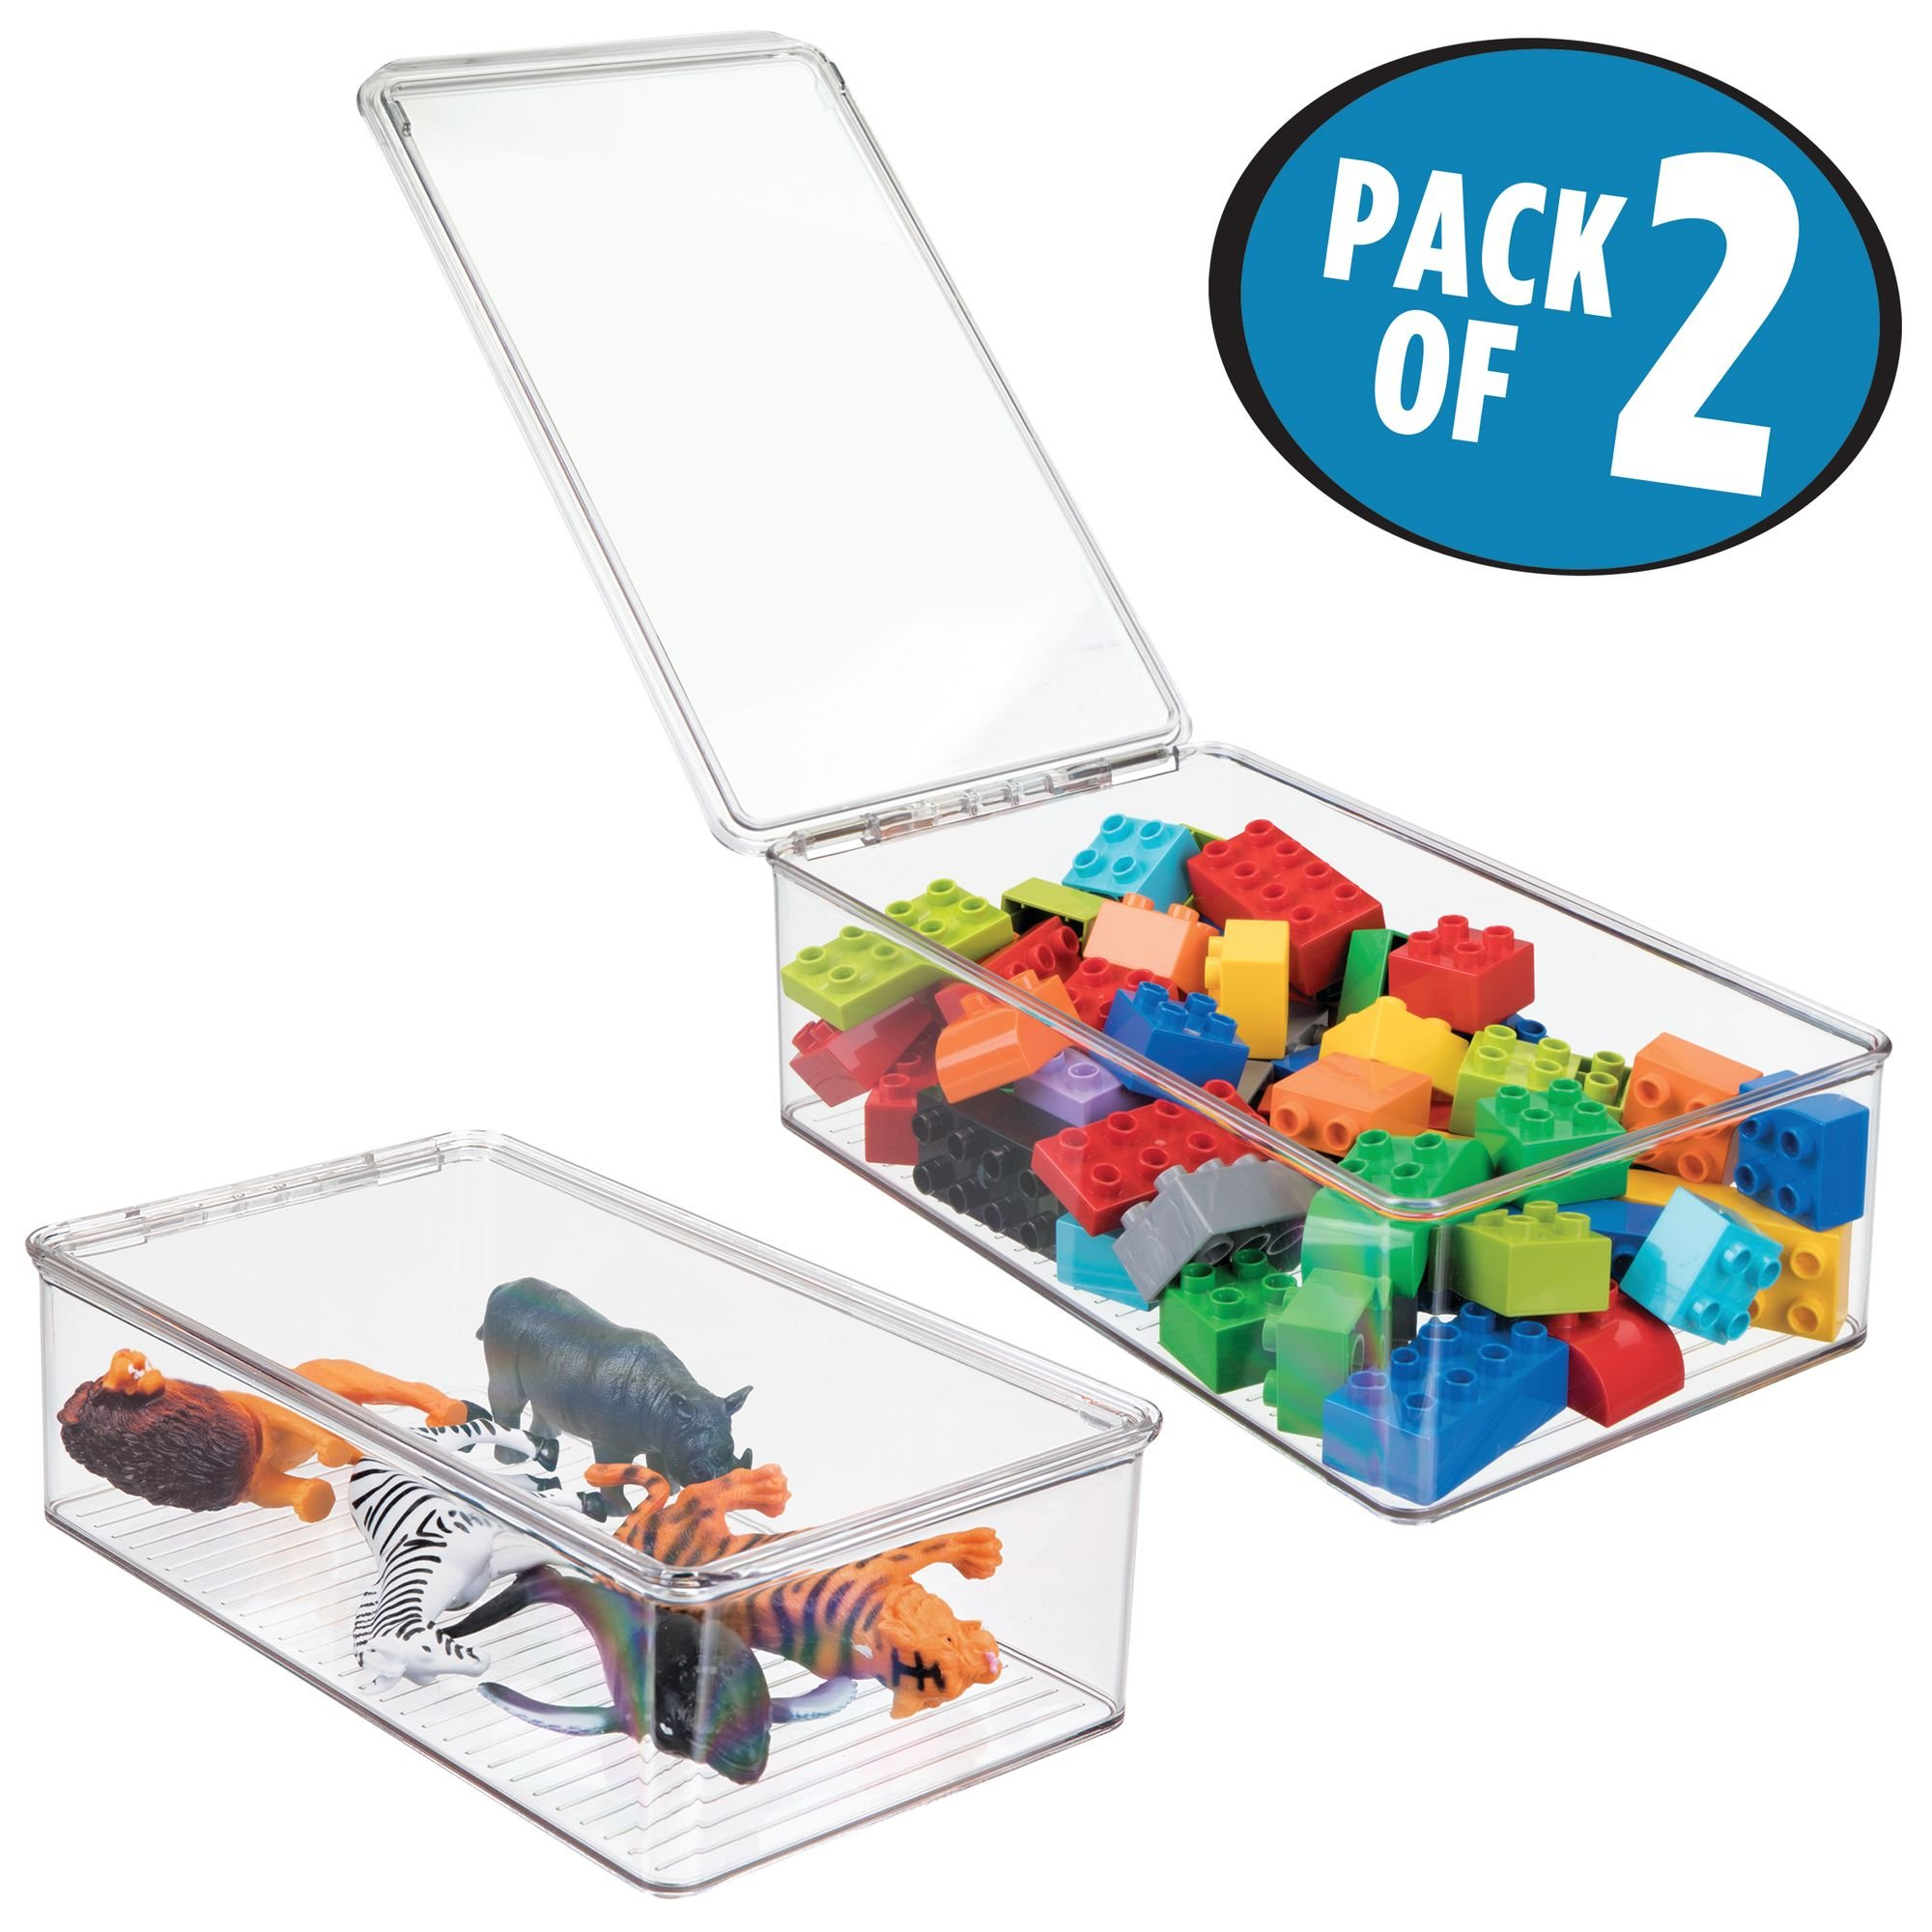 mDesign Kids Toy Storage Box with Hinged Lid for Action Figures, Cars, Crayons, Puzzles - Pack of 2, Clear